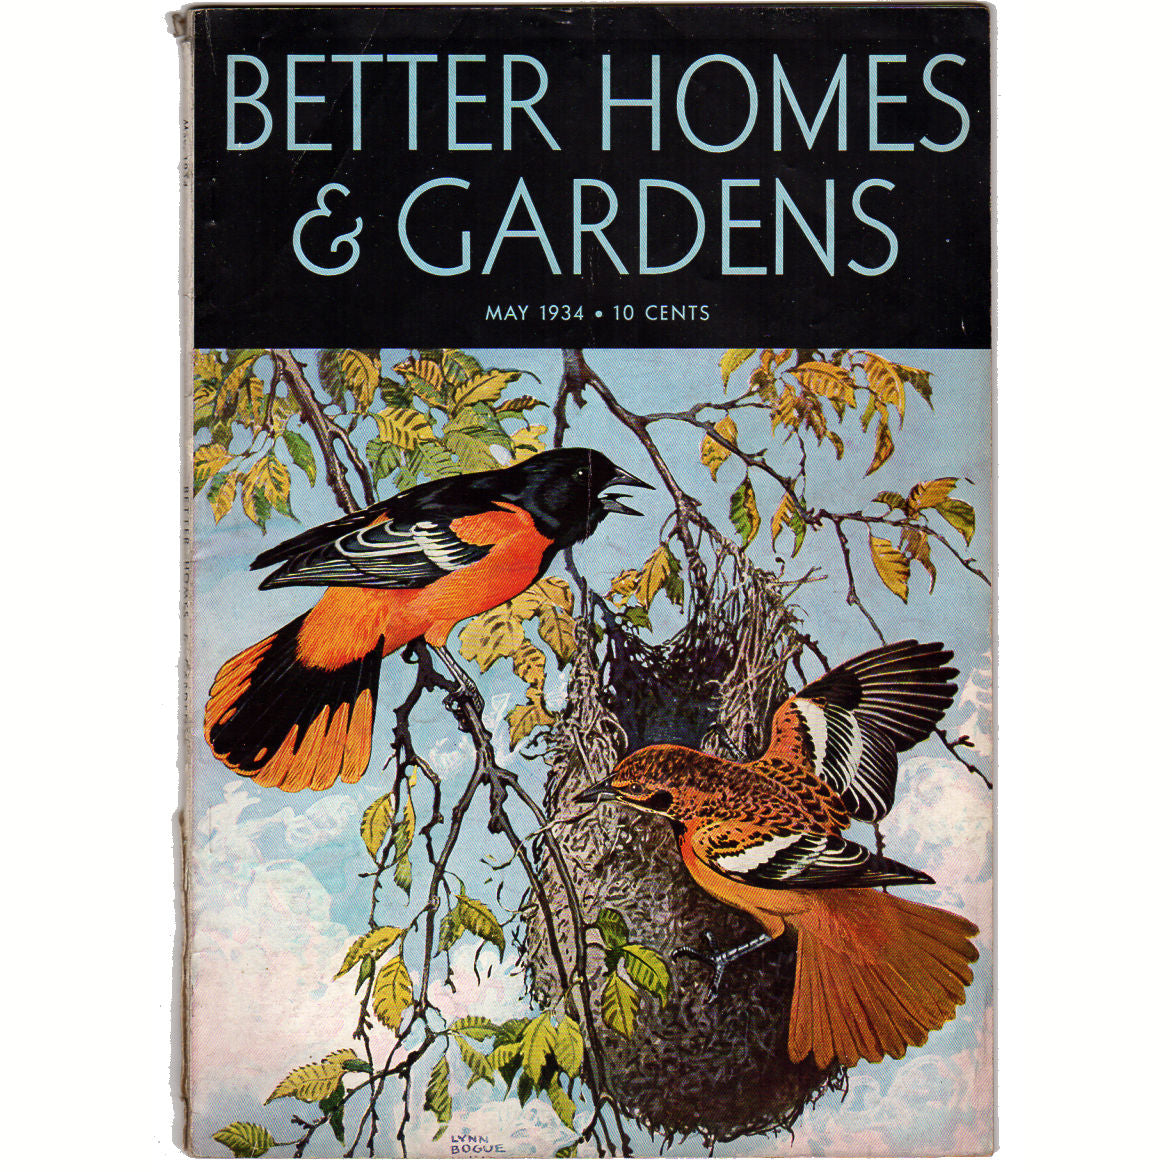 Bhg Magazine Covers: Vintage Collectibles